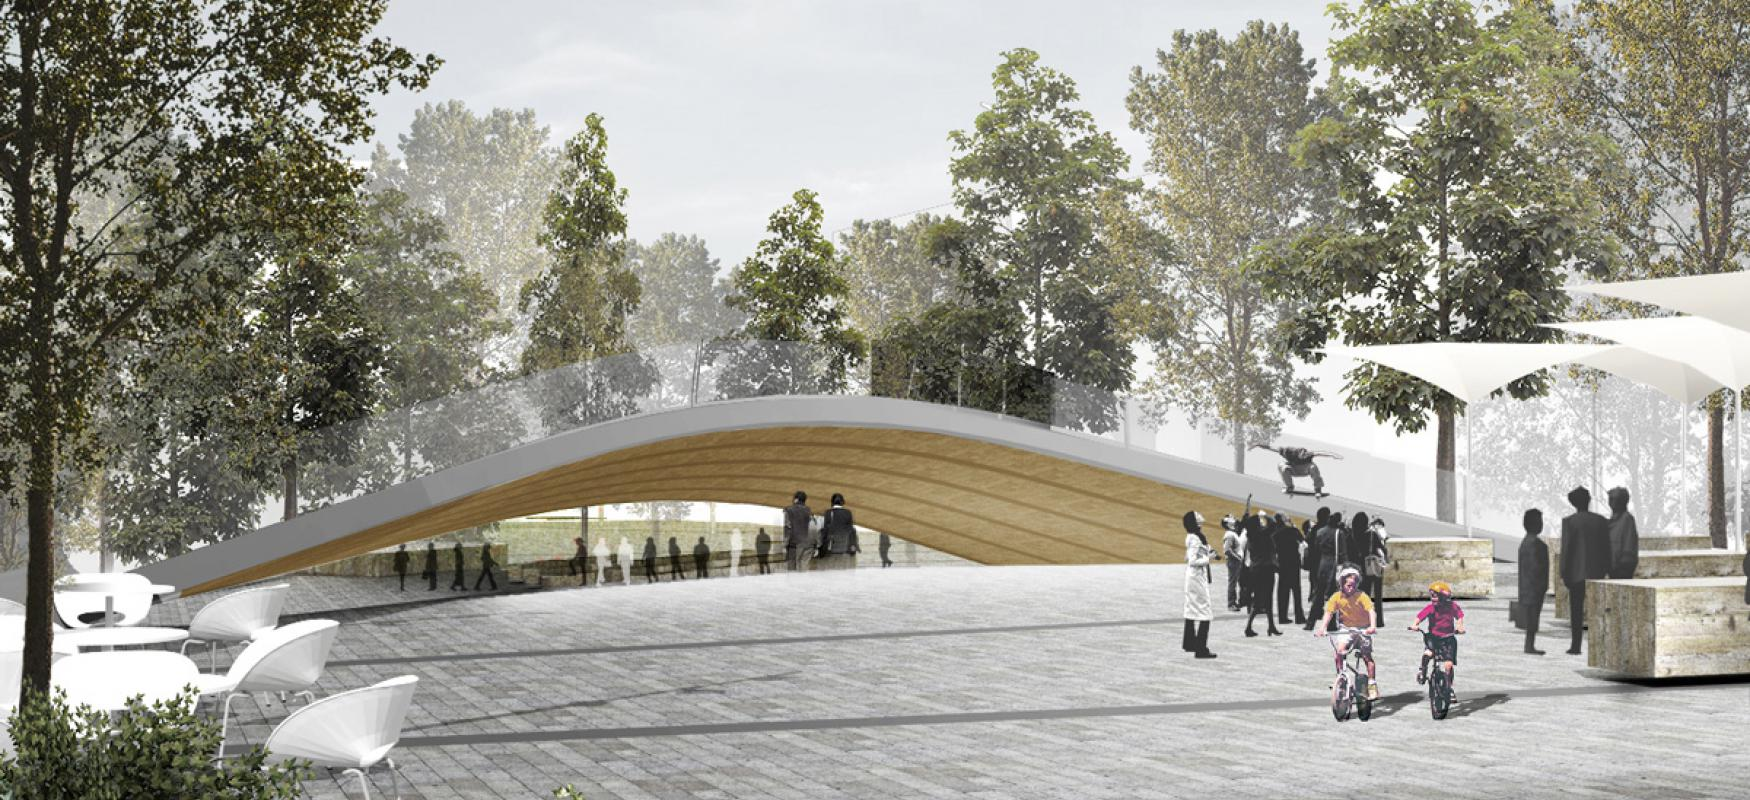 Render of the Flying Carpet project showing Trygve Lies plass in Oslo with a futuristic bridge and people.